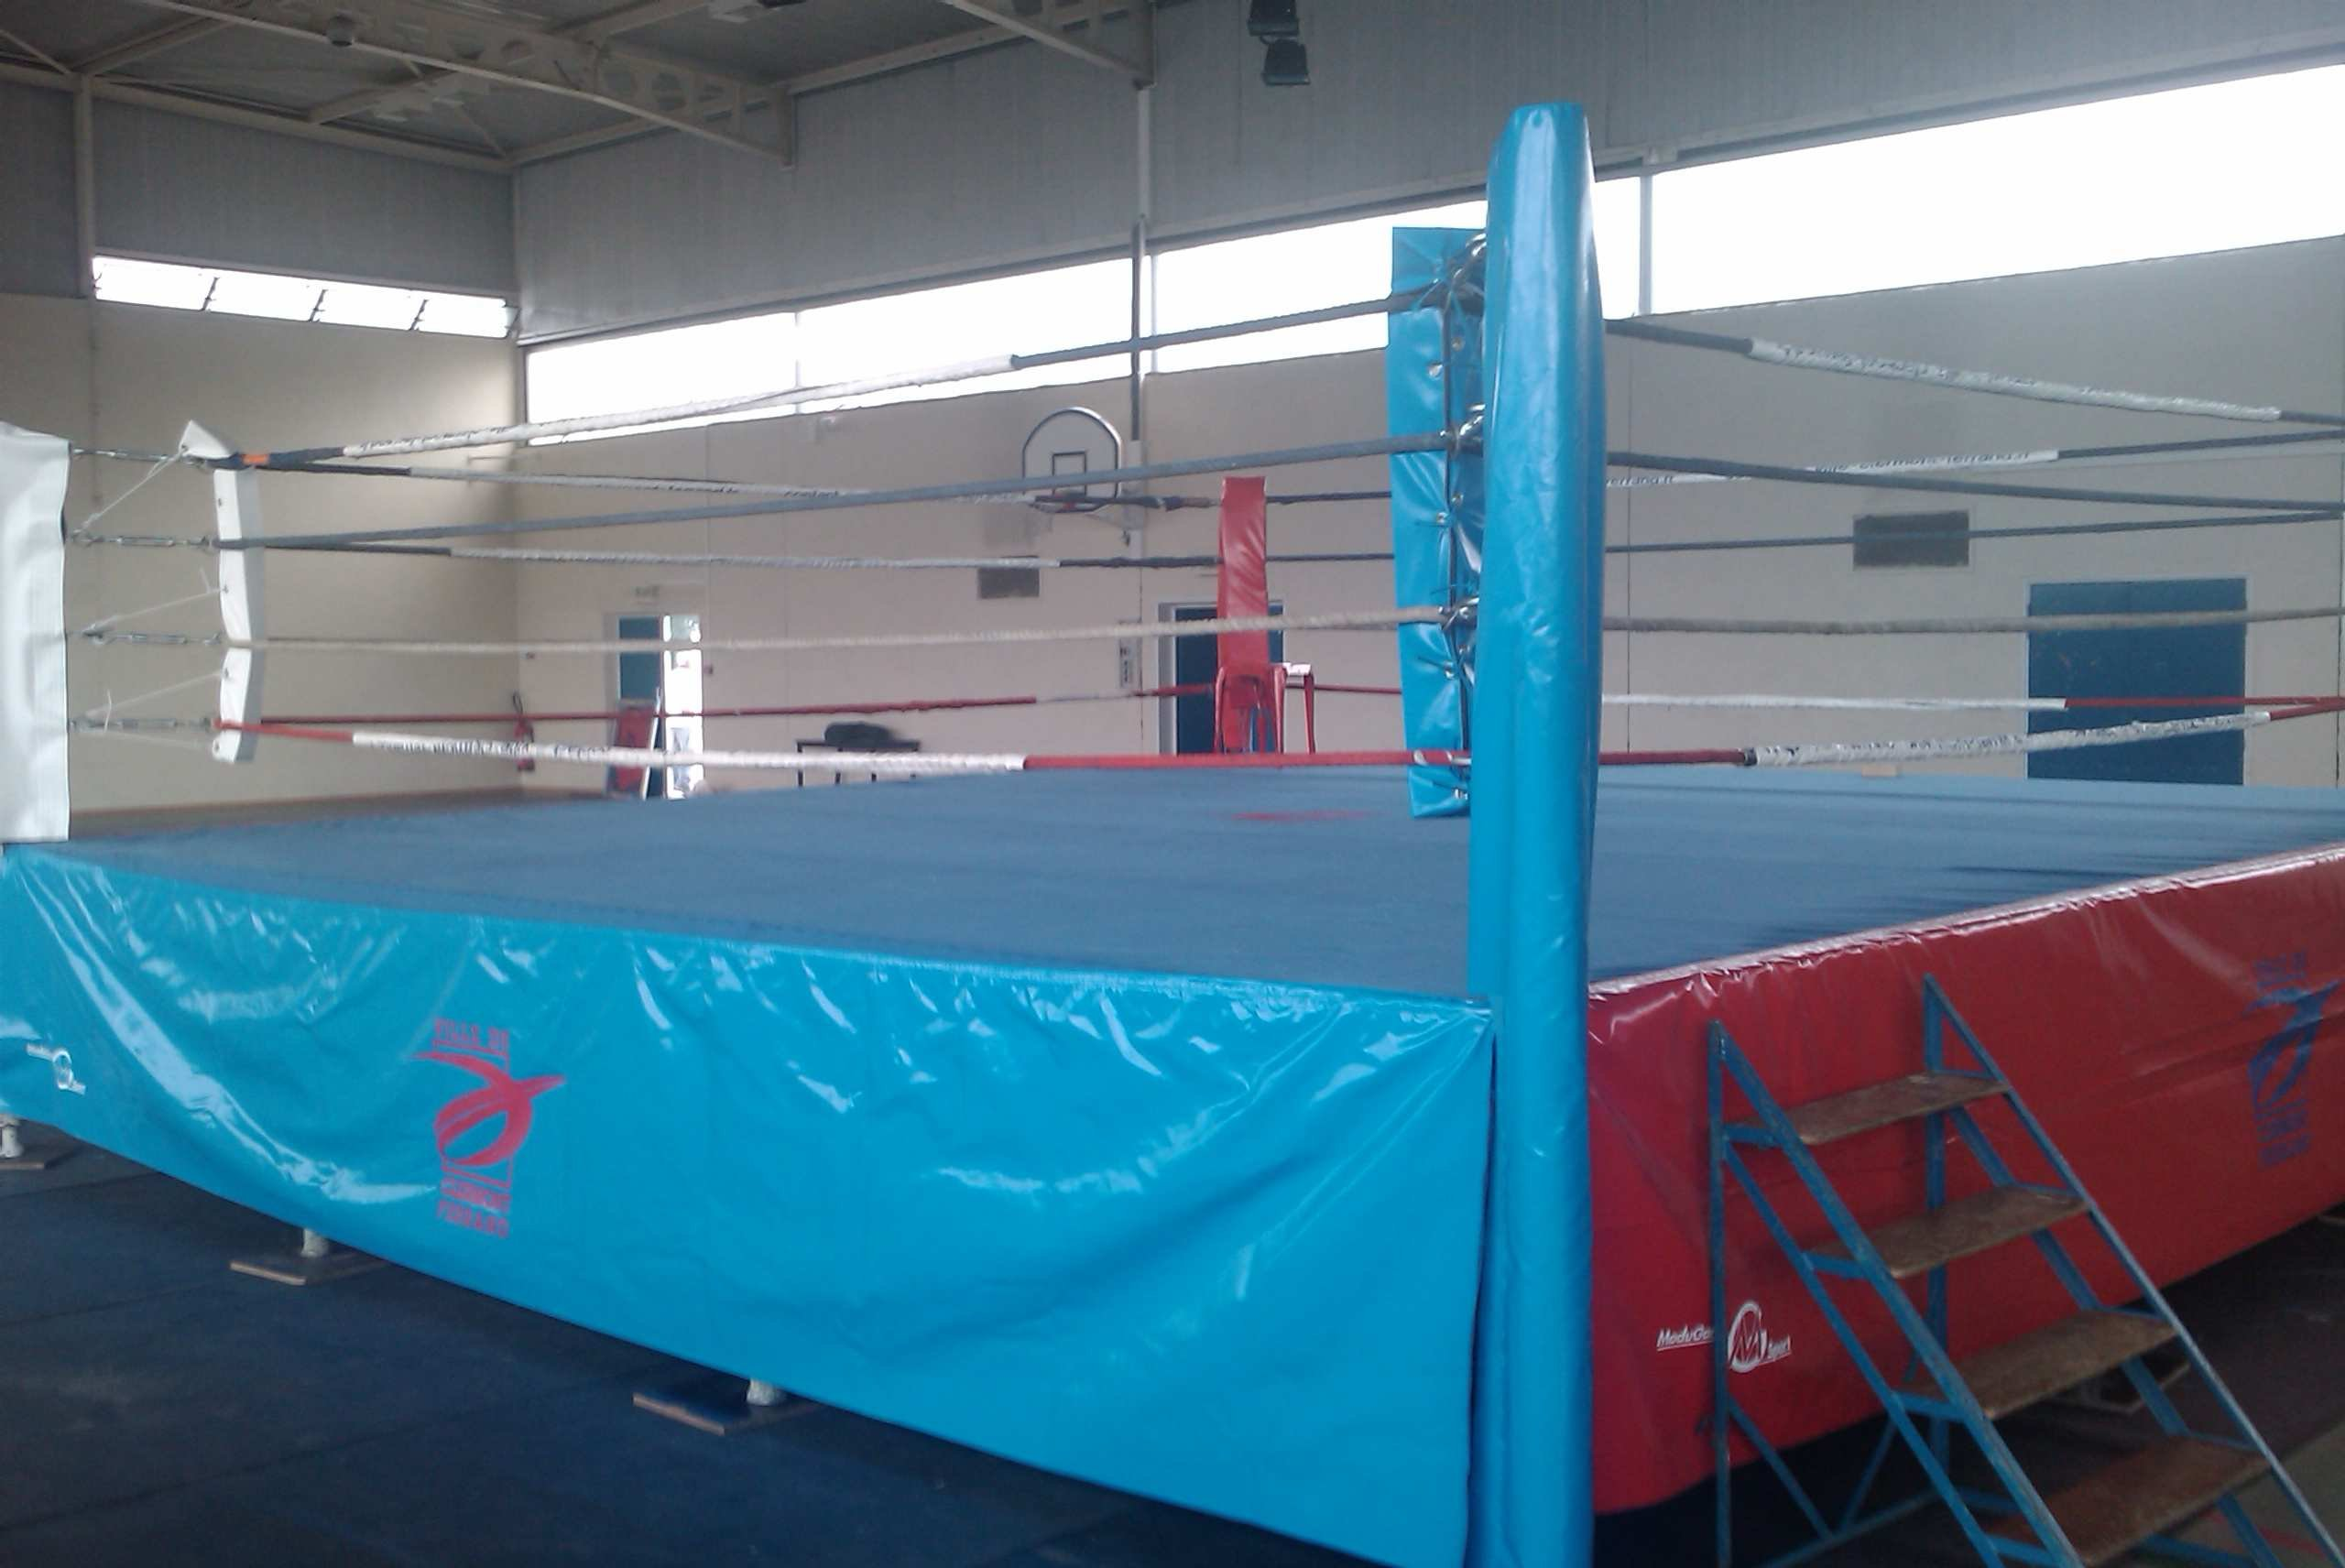 Ring de Boxe Toile Coton - 520 x 520 cm (REF BOX-9.5)